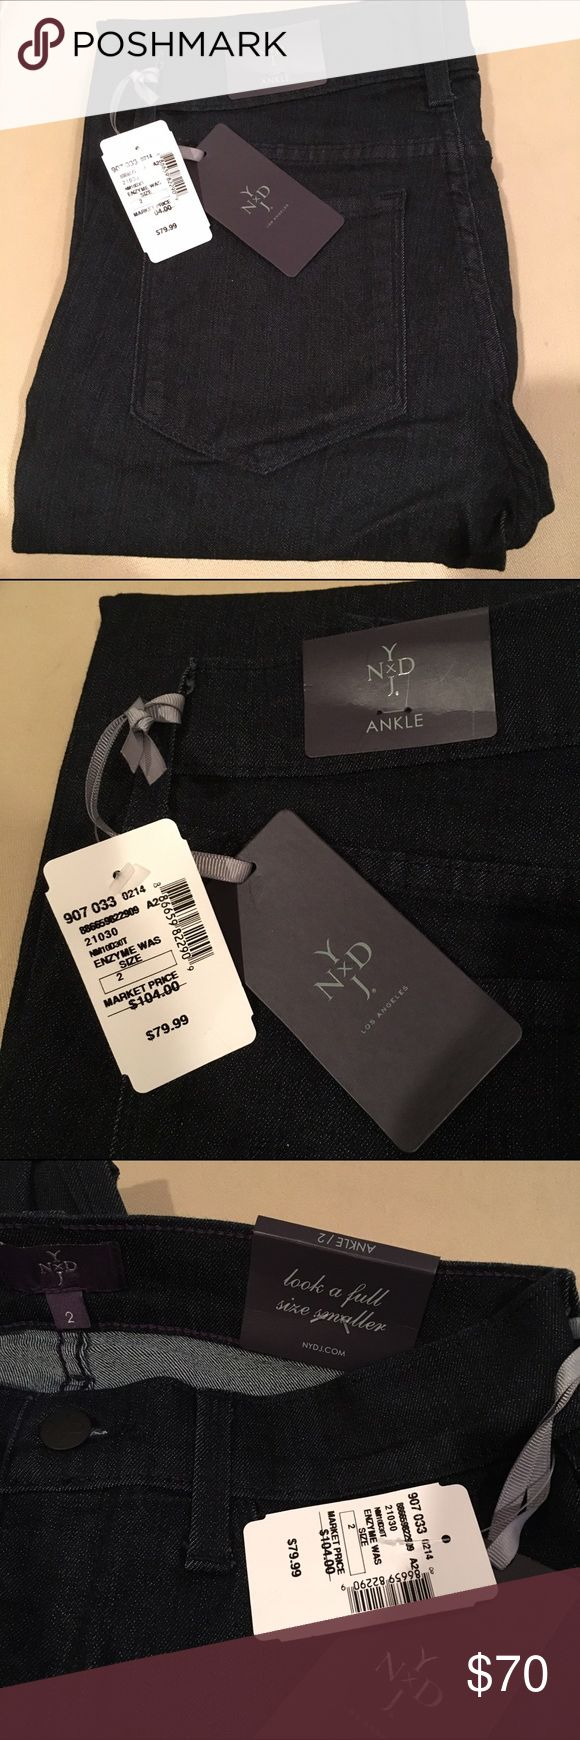 NWT Not Your Daughters Jeans, ankle length, size 2 NWT ankle length, size 2, from Not Your Daughters Jeans (NYDJ). Tags intact. Dark indigo wash. Purchased at Saks Off 5th Avenue for full ticket price shown. Not Your Daughters Jeans Jeans Ankle & Cropped